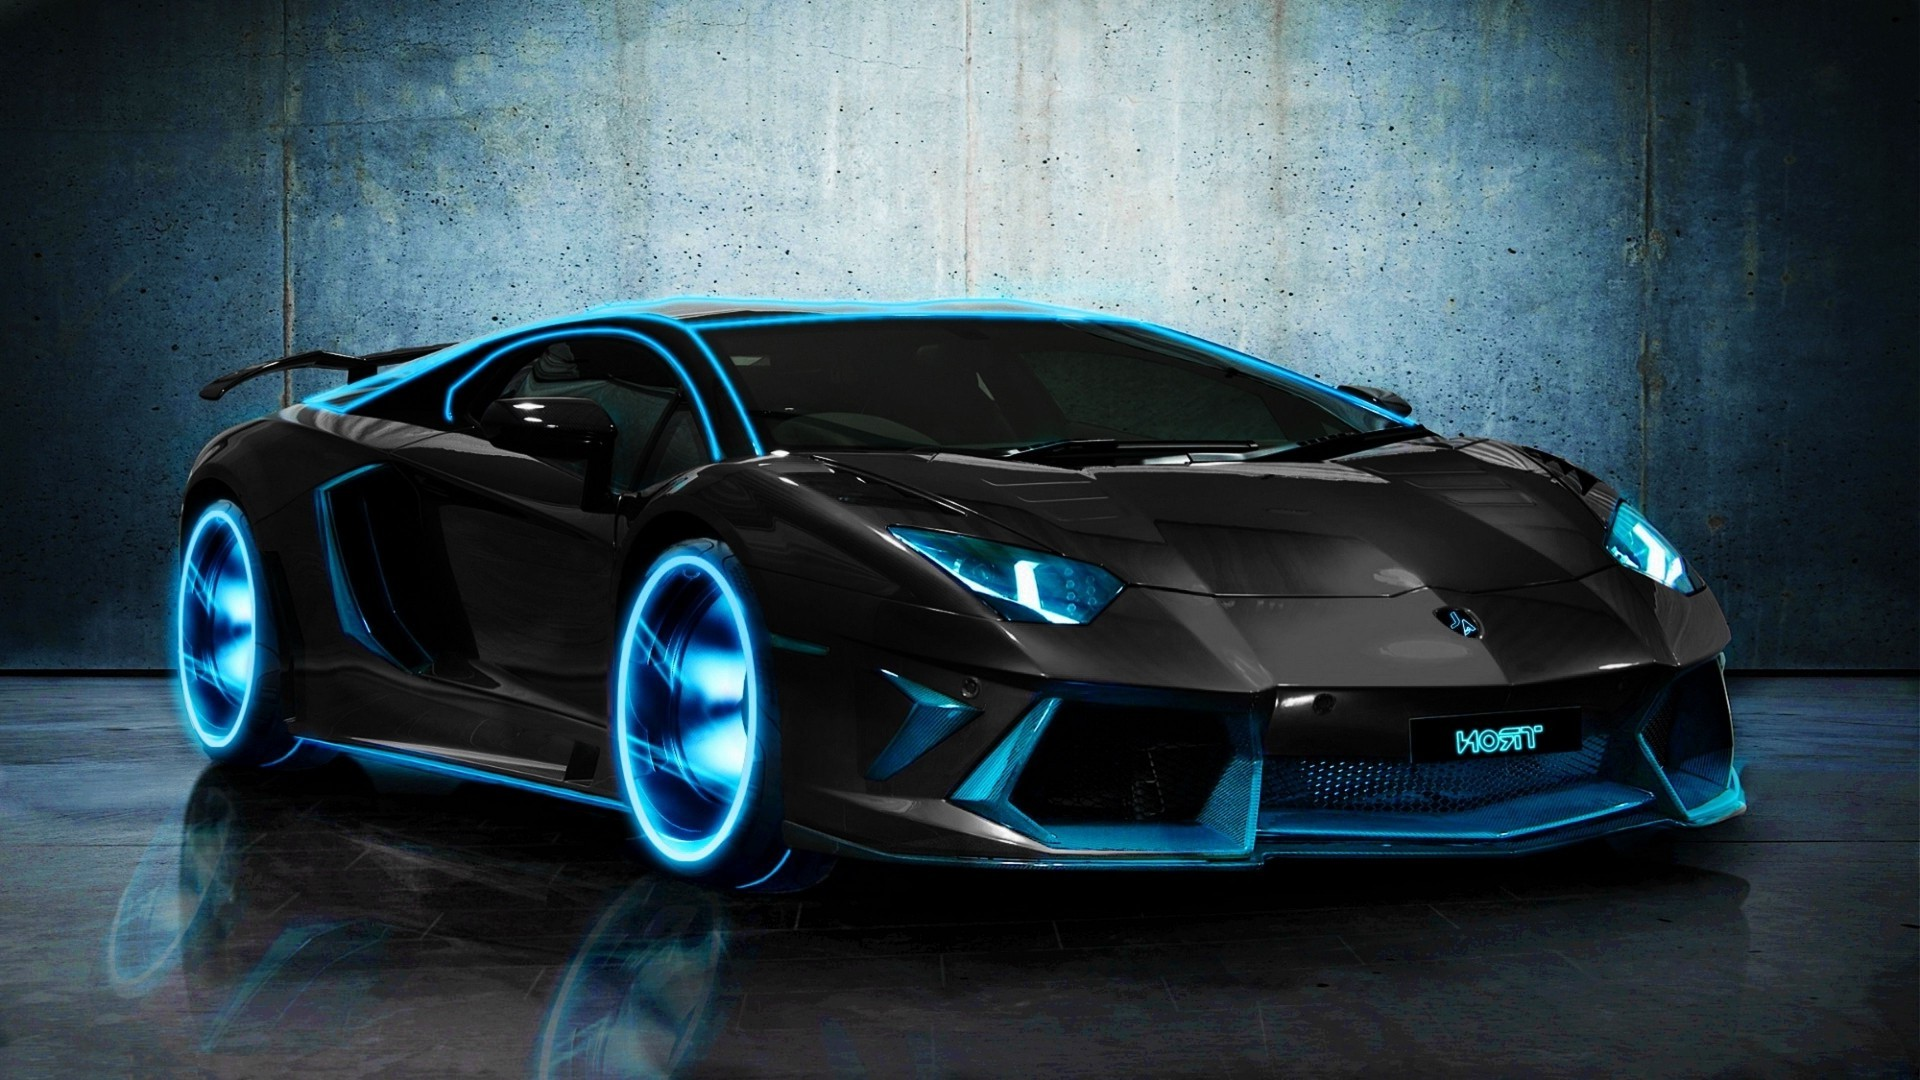 HD TRON Lamborghini Aventador Wallpapers HD Wallpaper WallWuzz 1920x1080